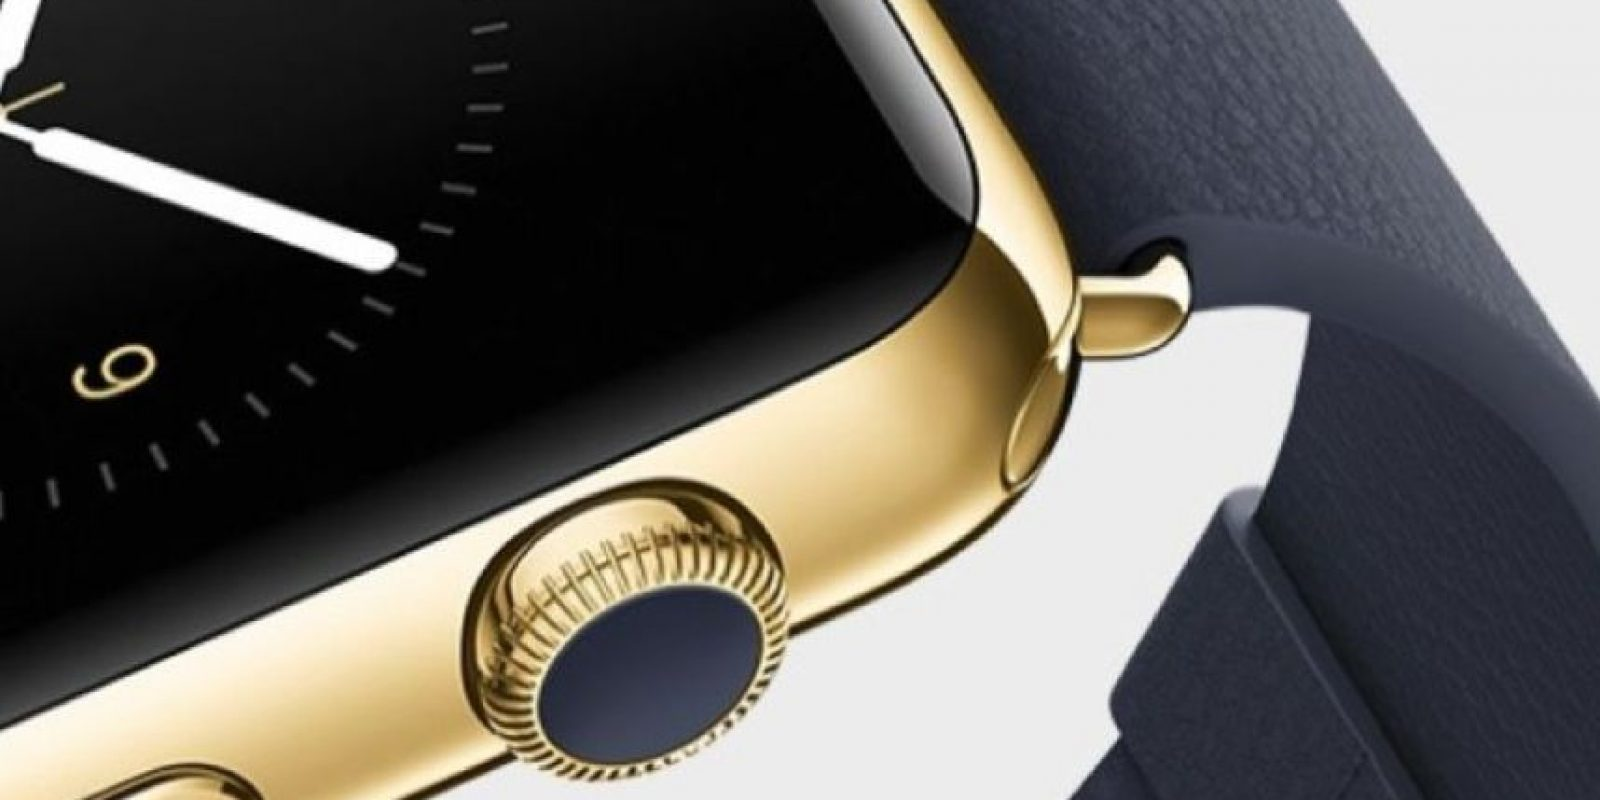 Tendrá tres distintos modelos: Apple Watch, Apple Watch Sport y Apple Watch Edition. Foto: Apple